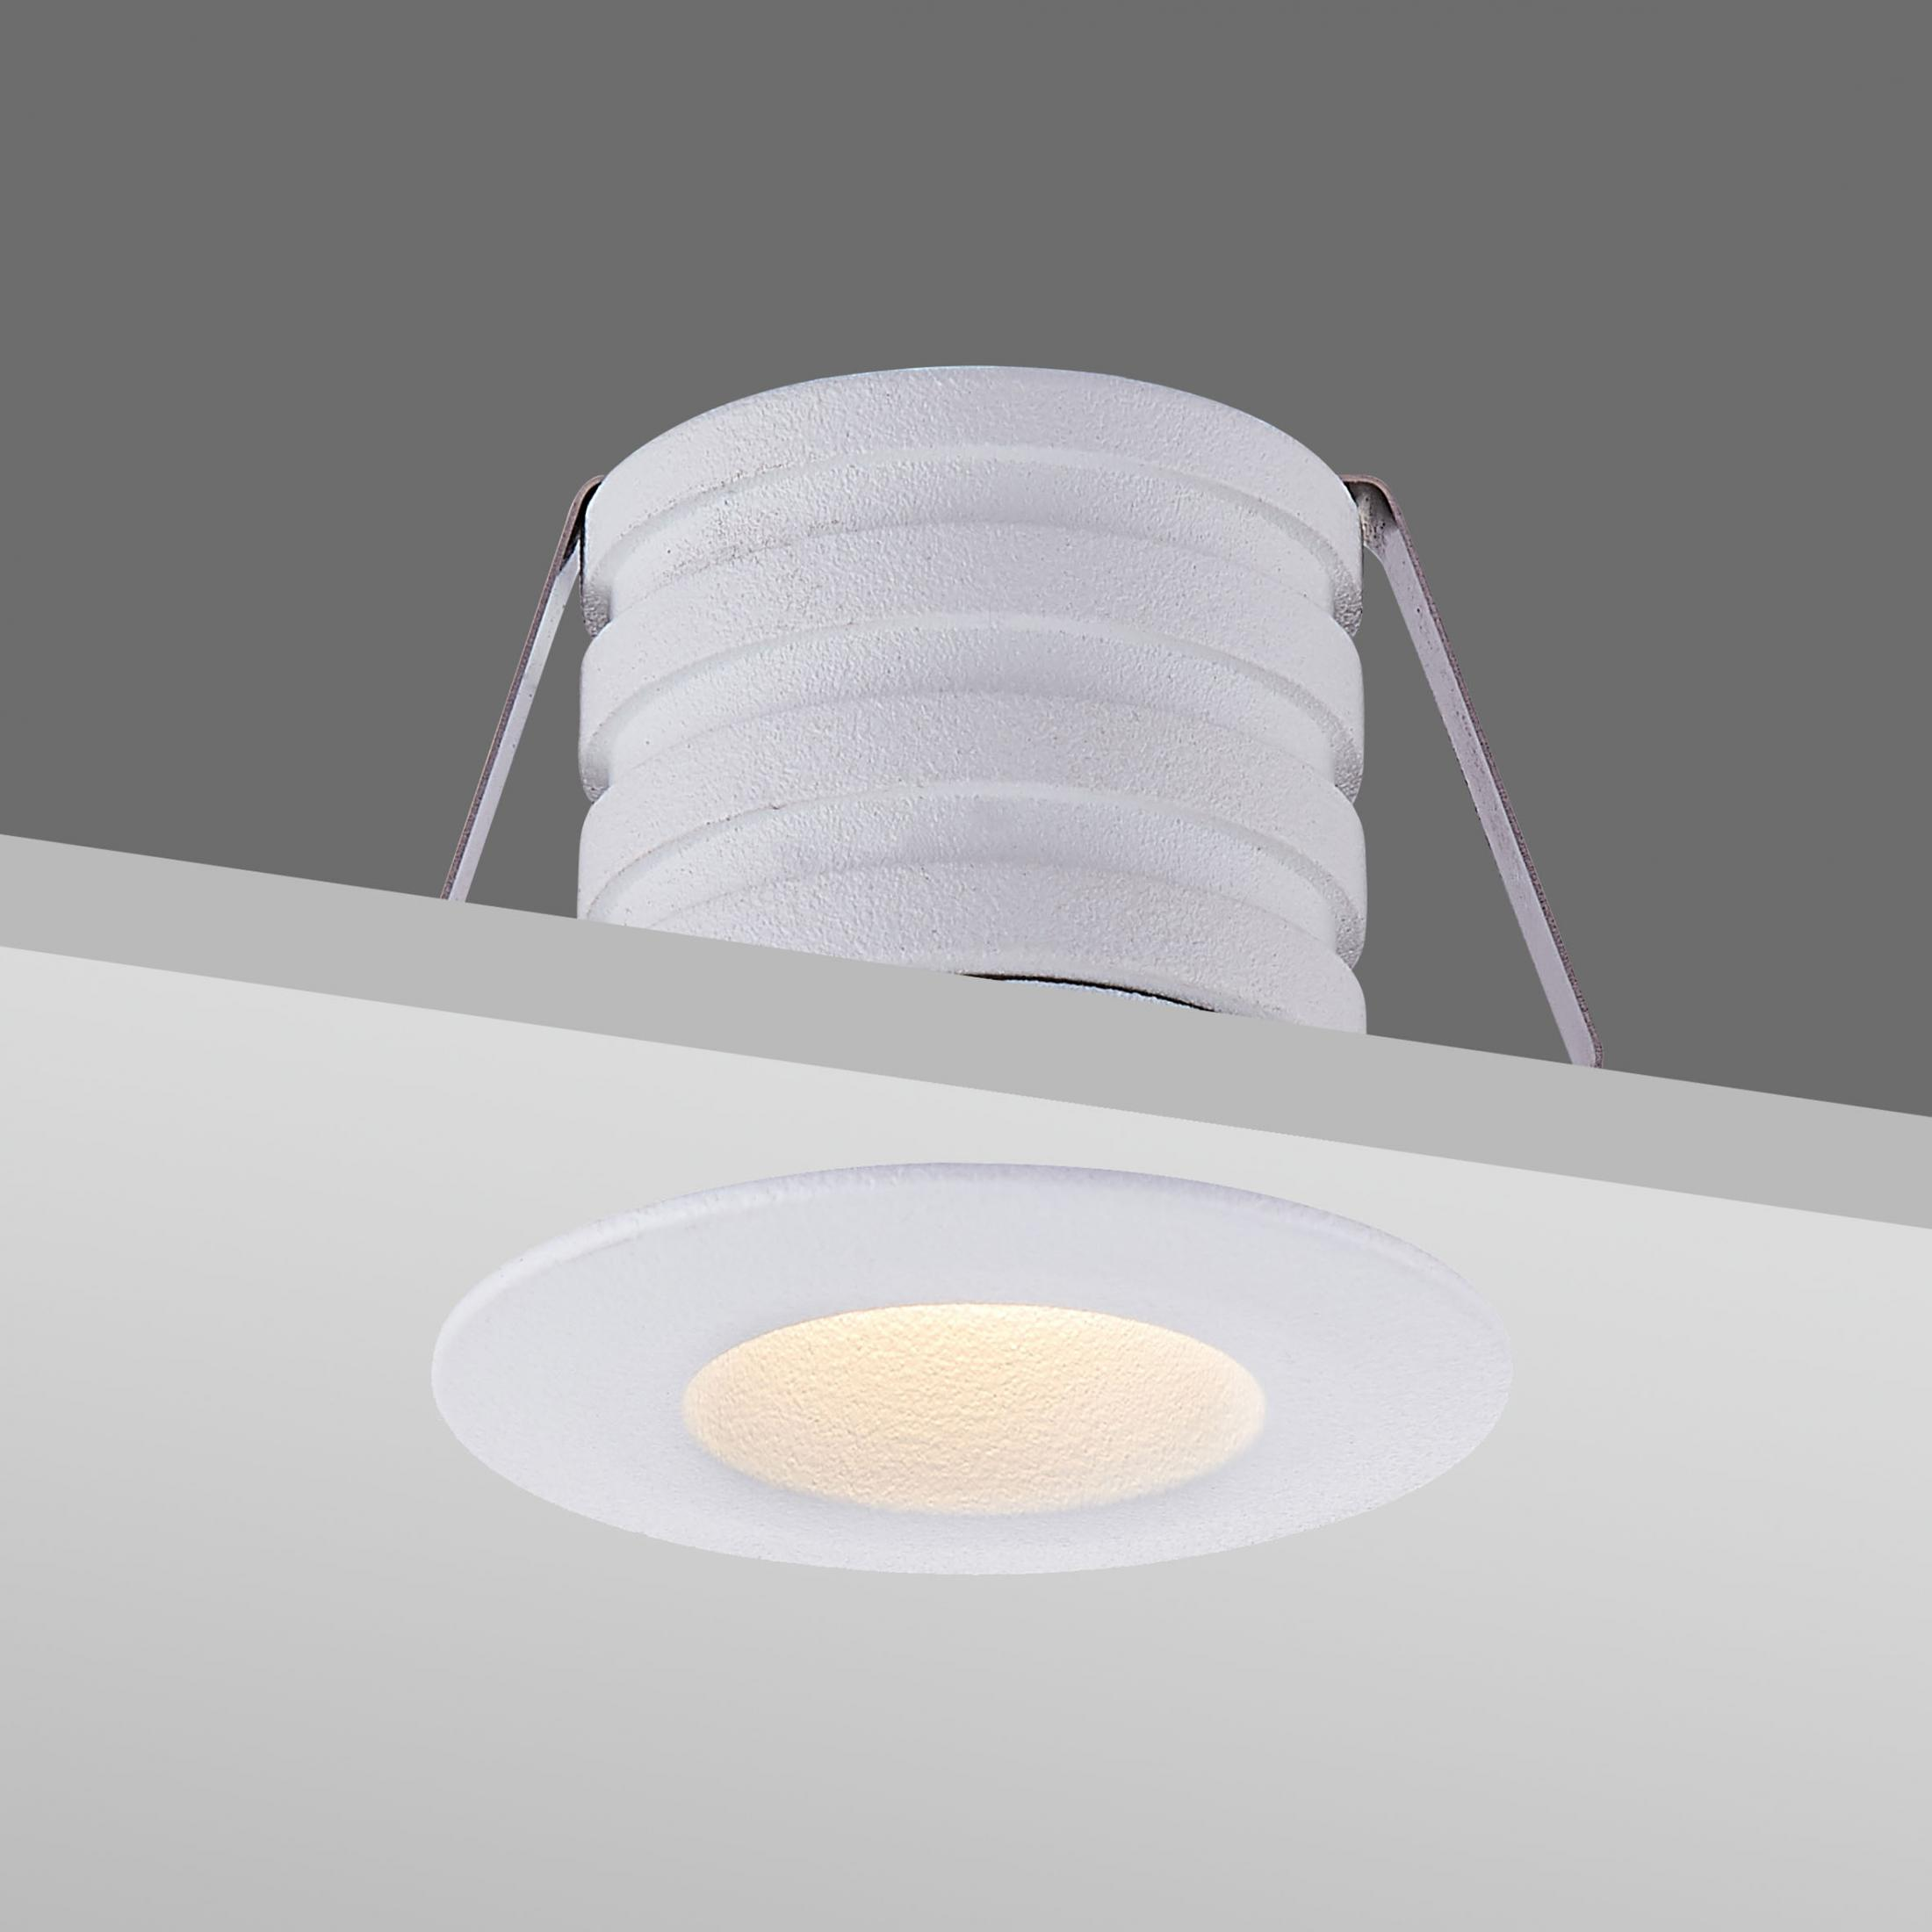 Interior recessed ceiling light